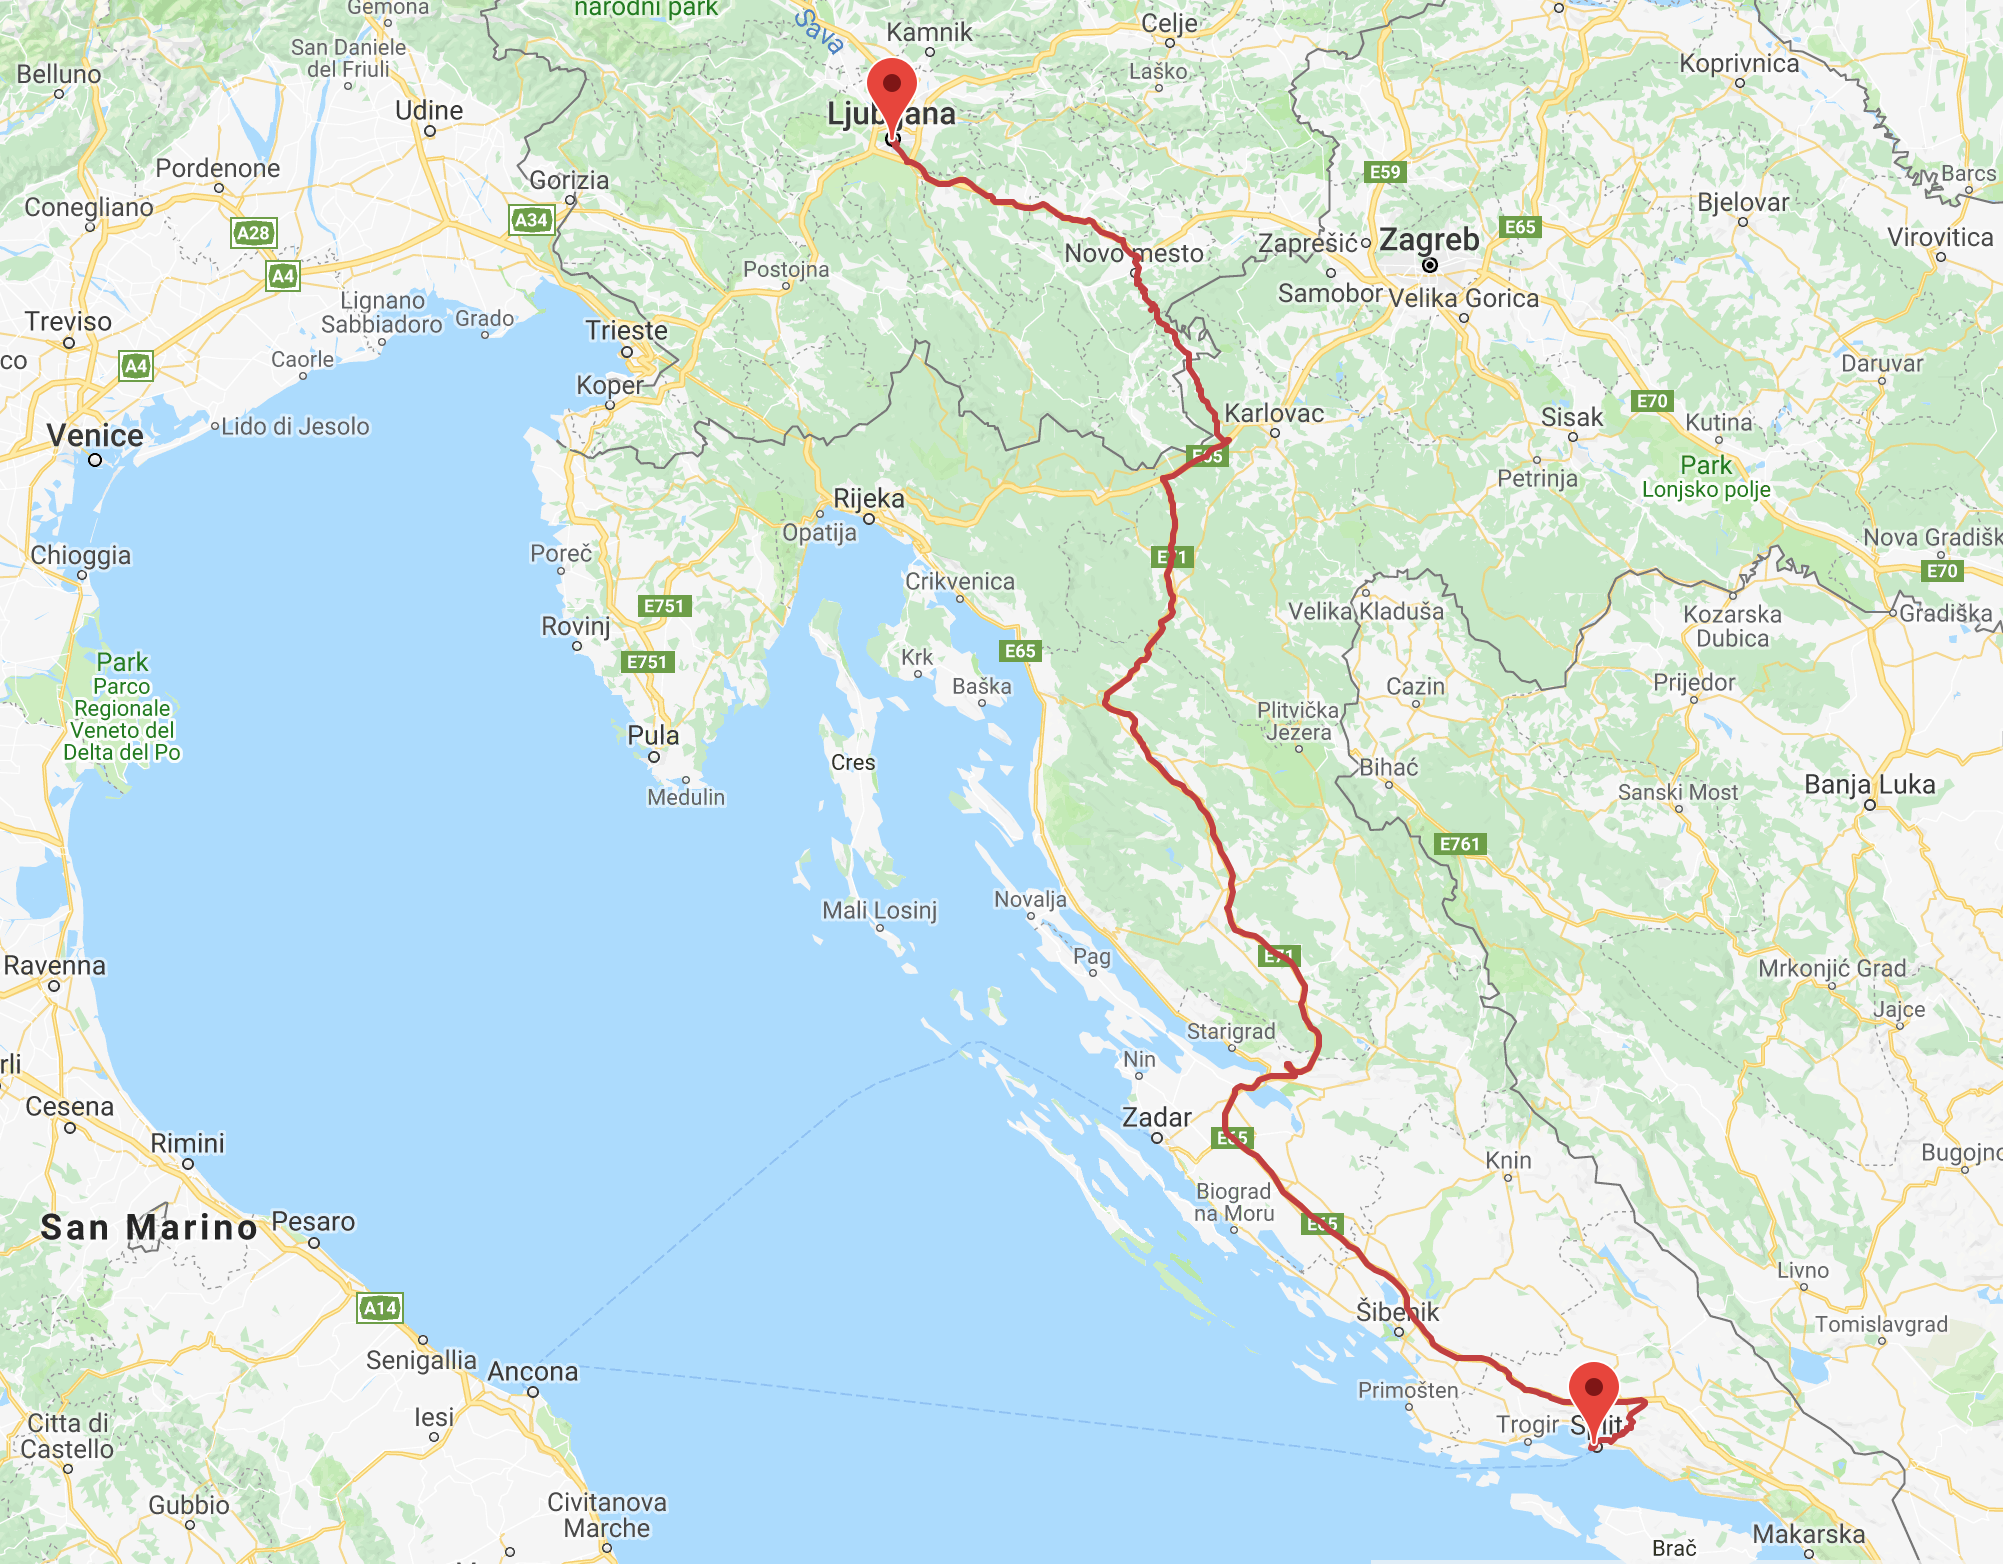 Although this map doesn't show it, I did spend the night in Zadar to break up the long bus ride into two days, not one. Plus, I love Zadar! :-)